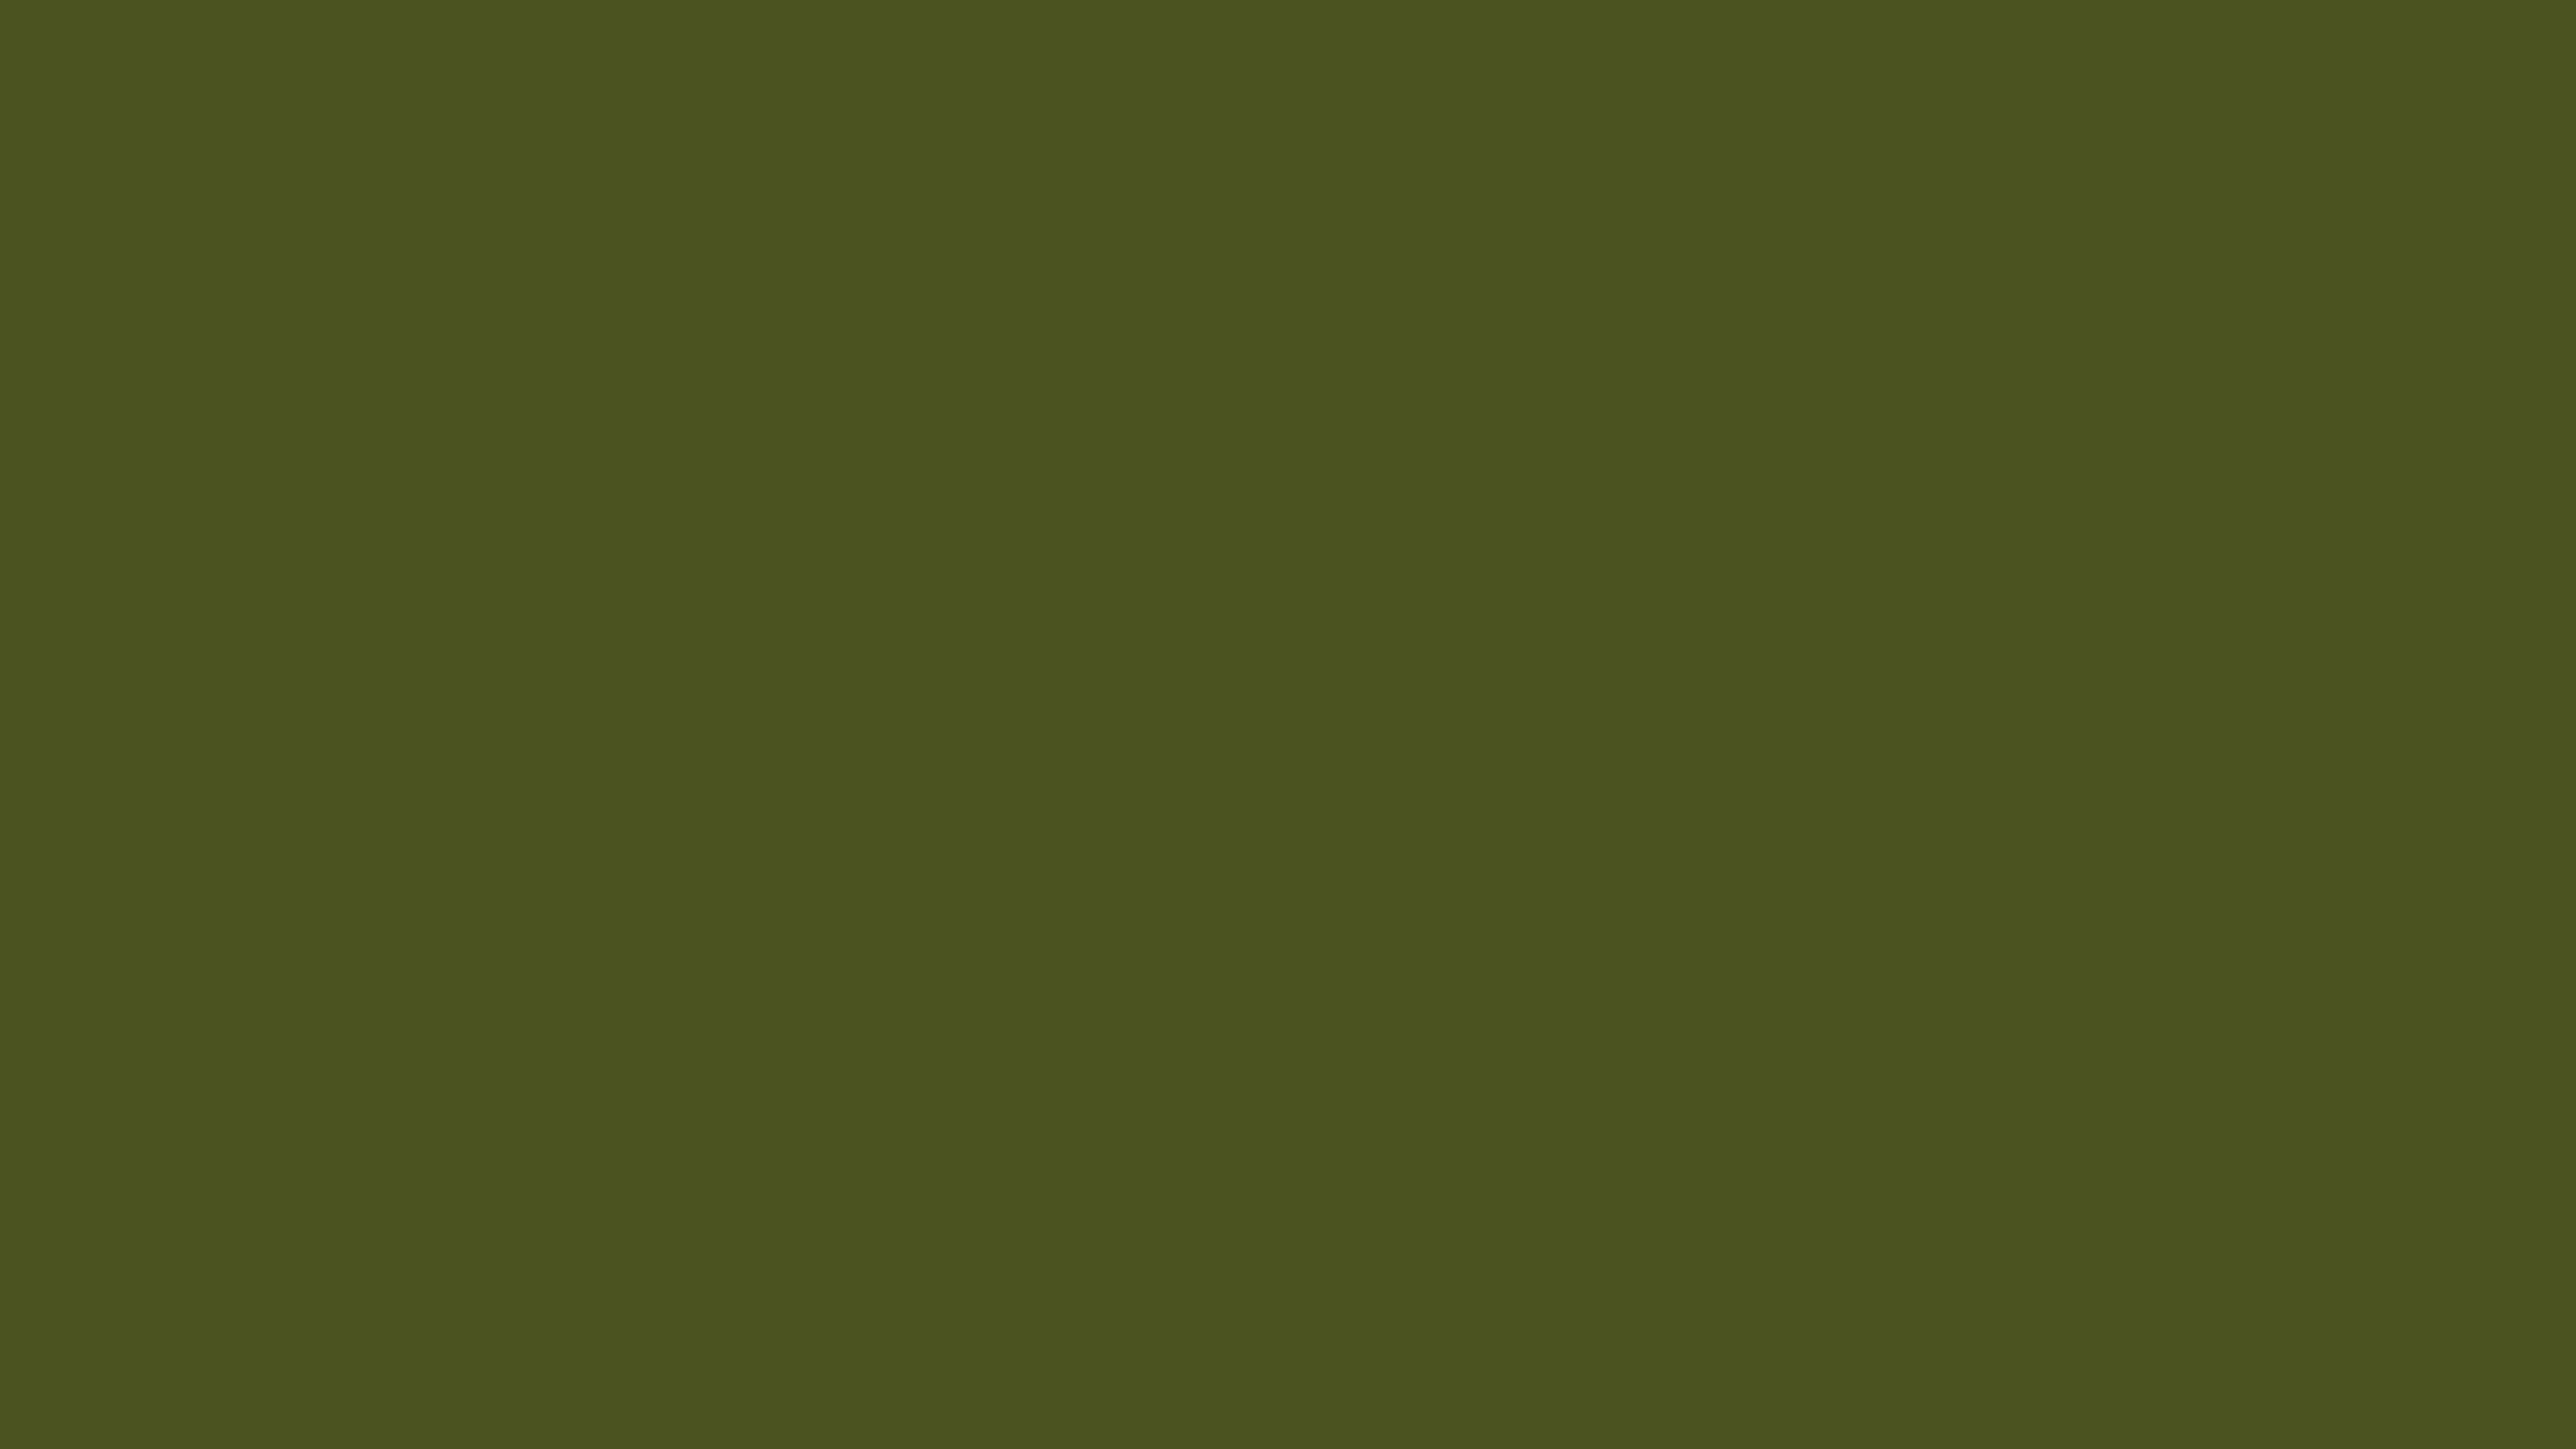 3840x2160 Army Green Solid Color Background